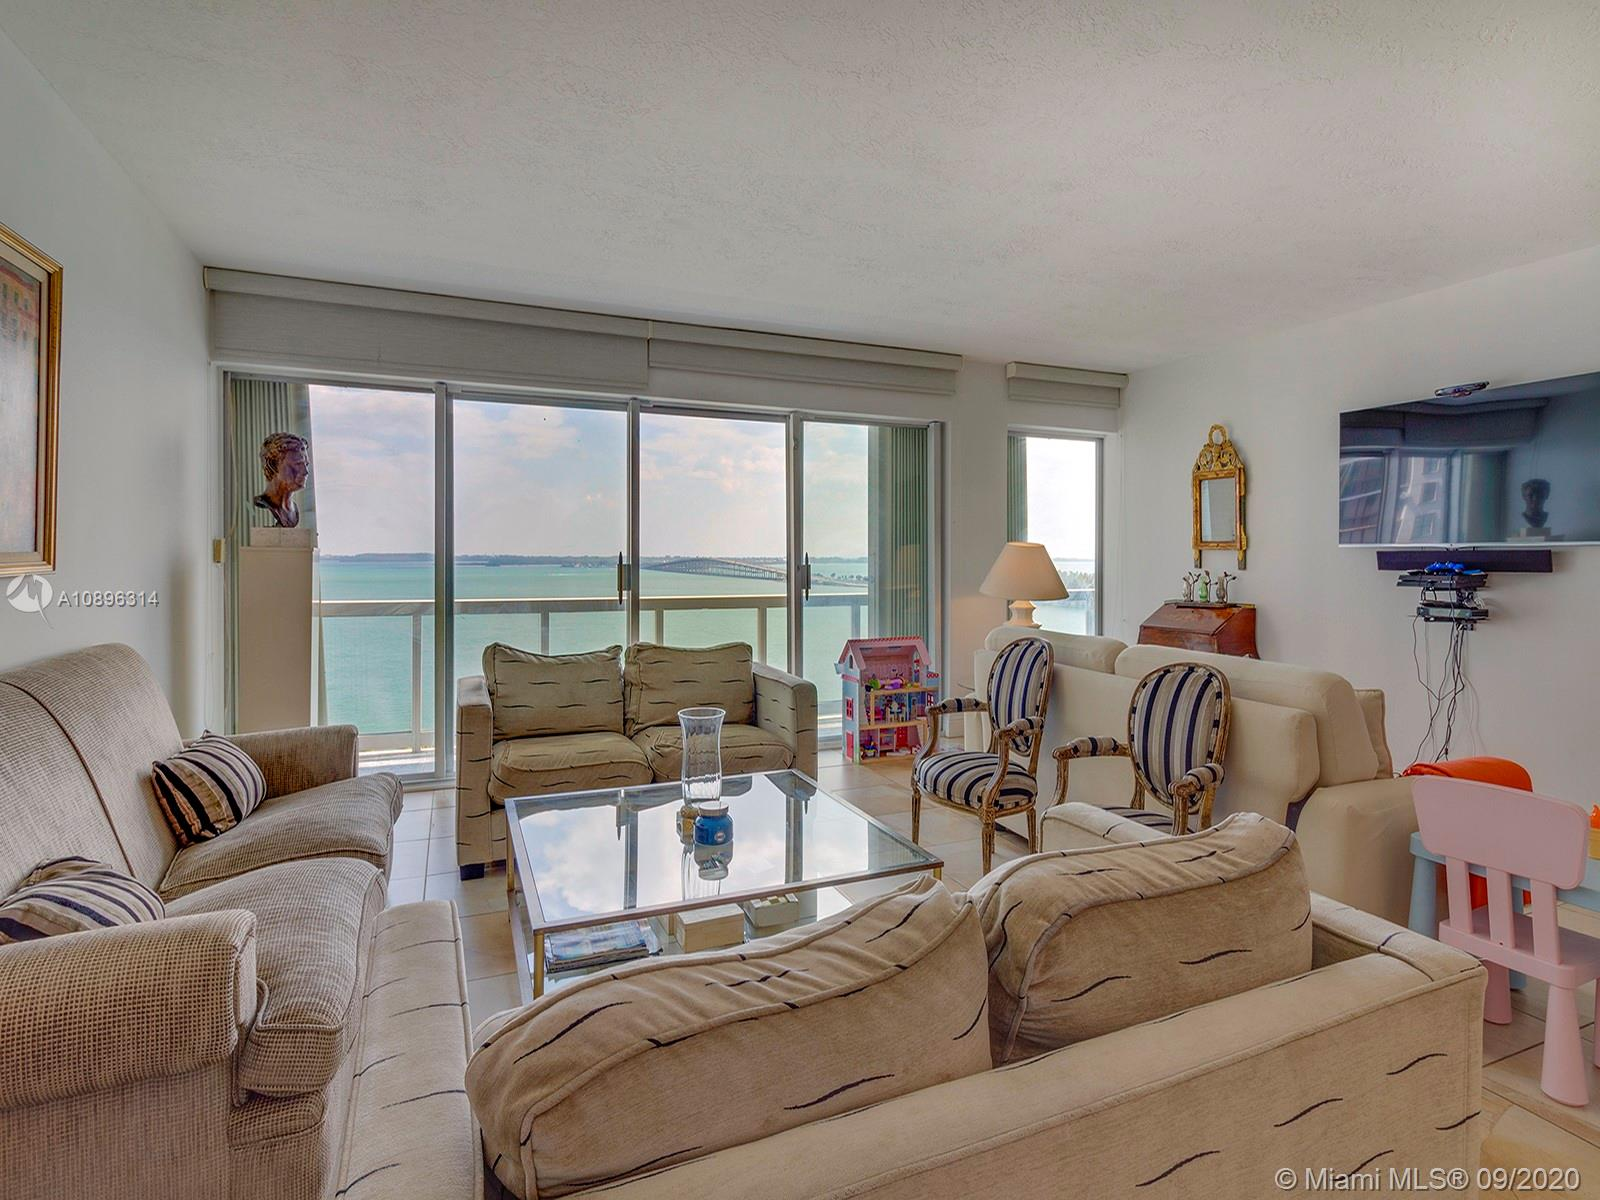 Brickell Townhouse #11J - 2451 Brickell Ave #11J, Miami, FL 33129